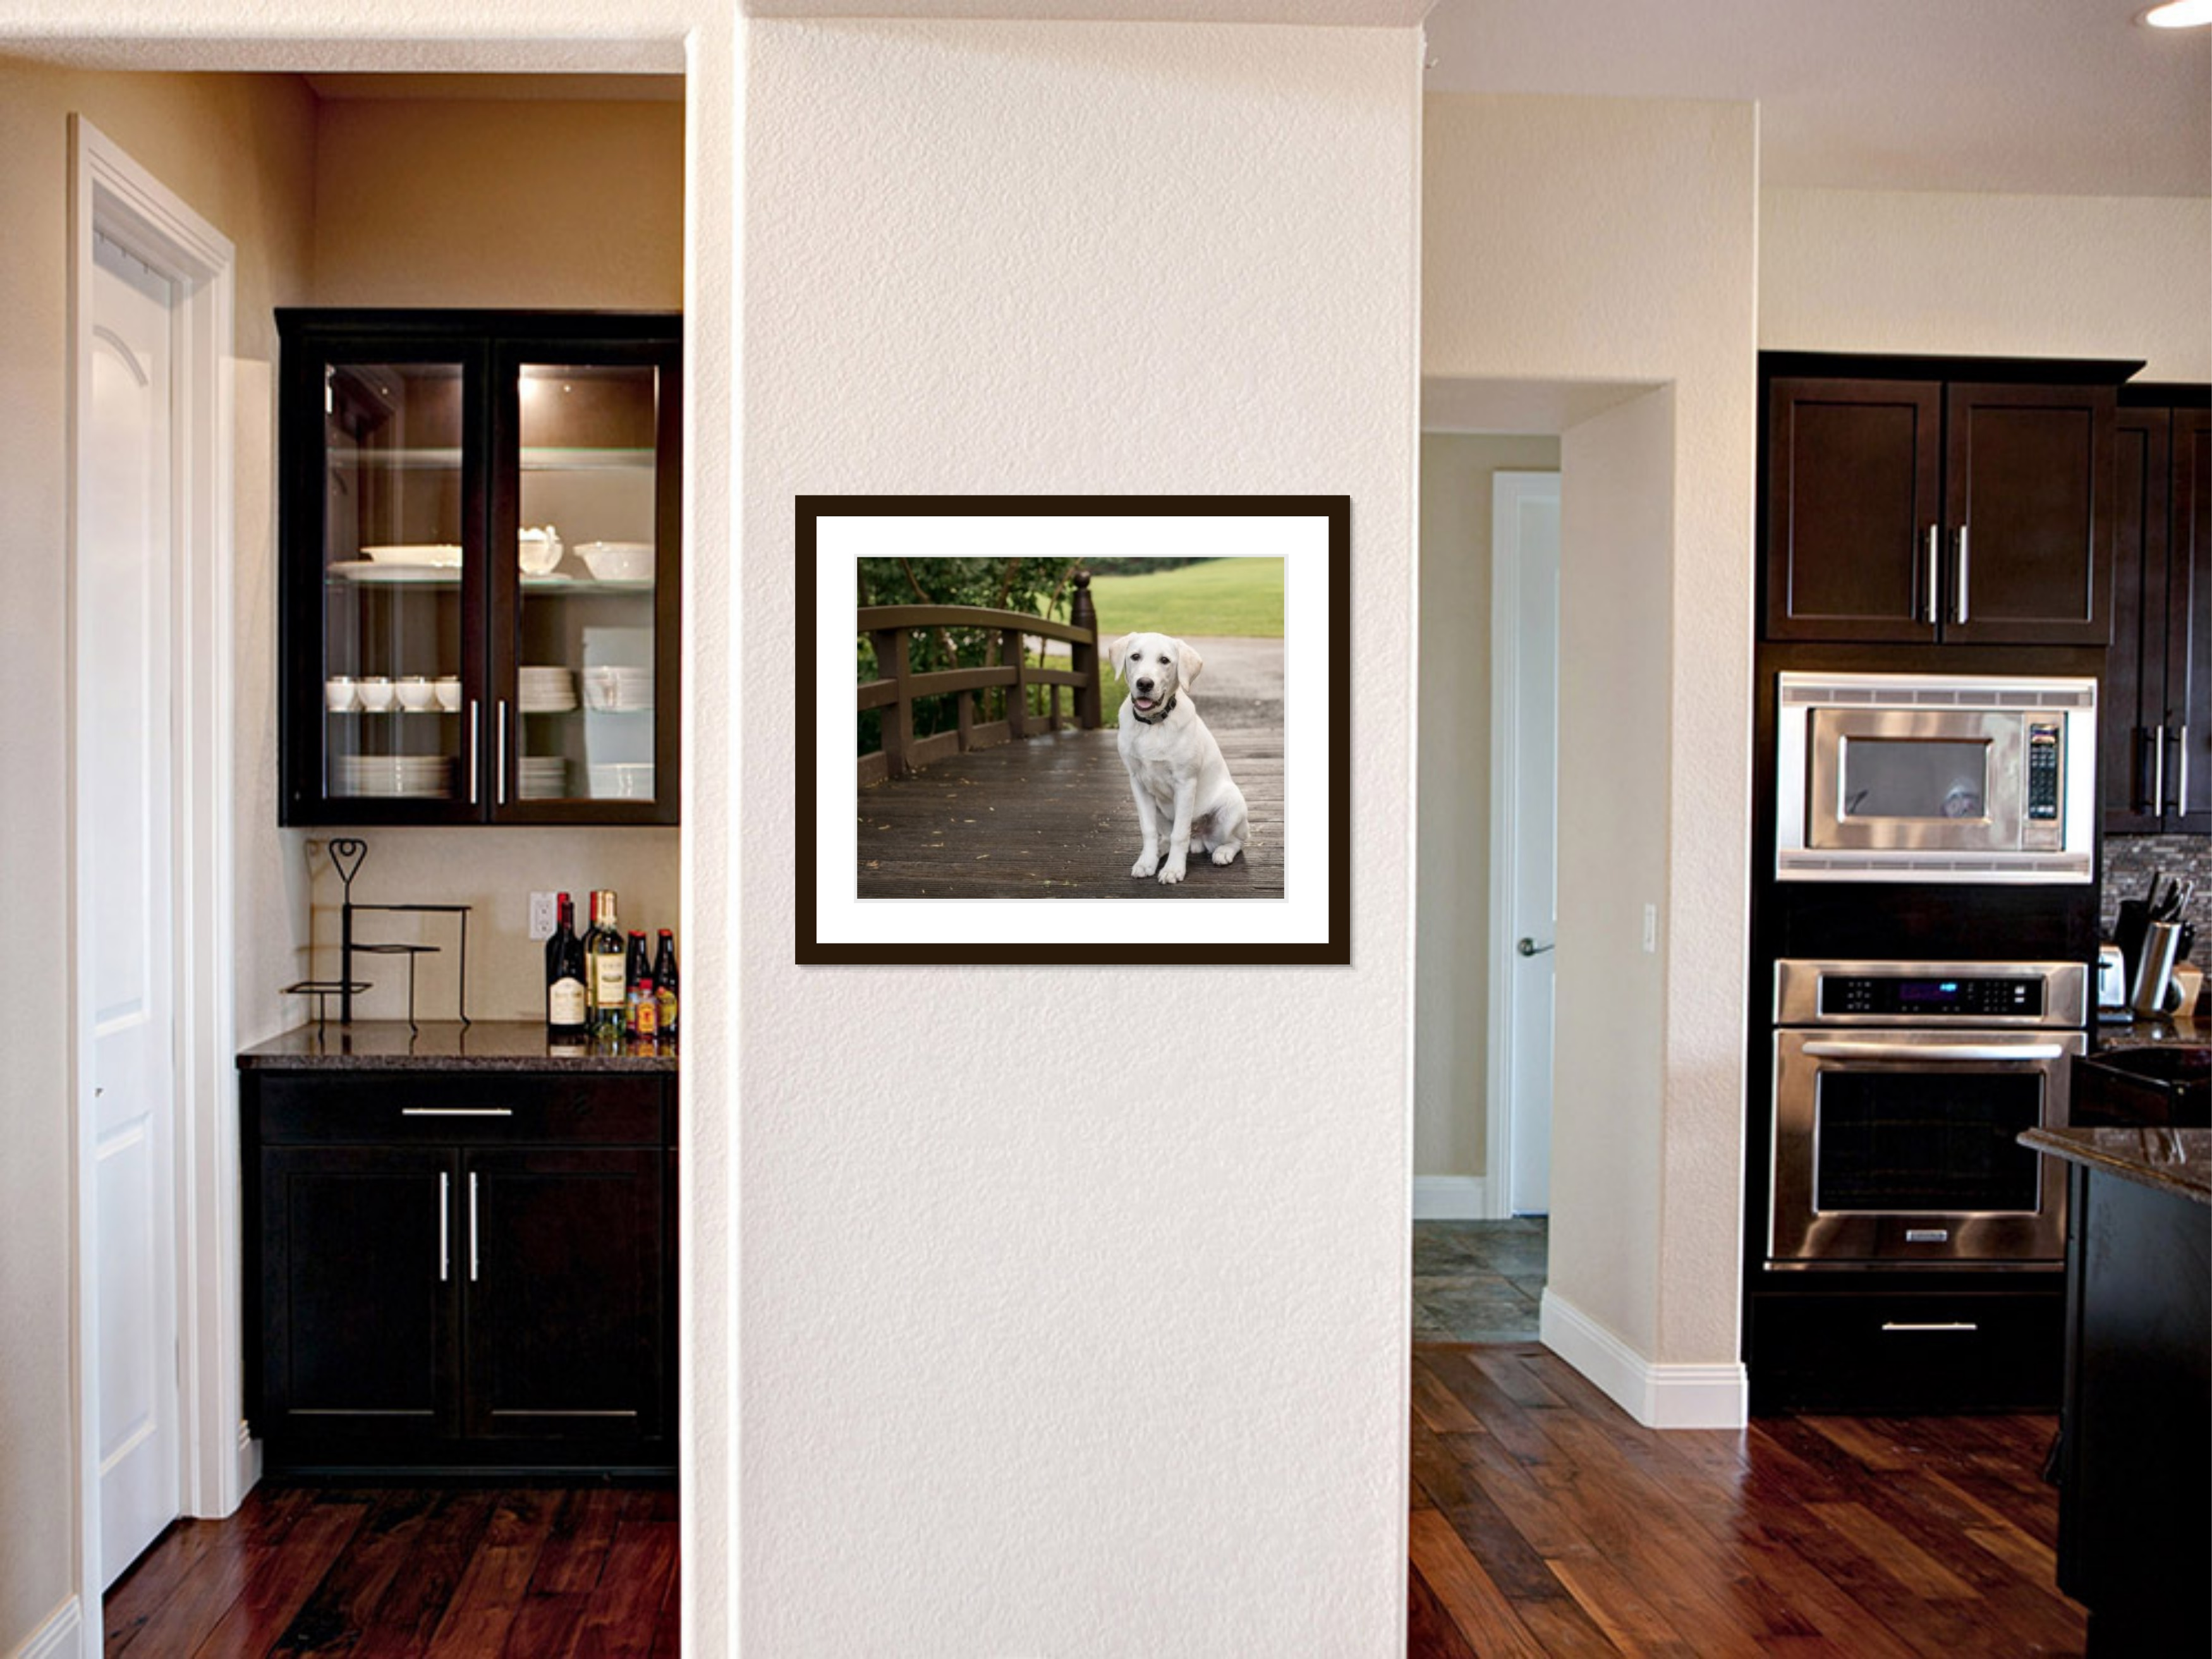 framed wall art of a puppy on kitchen walls